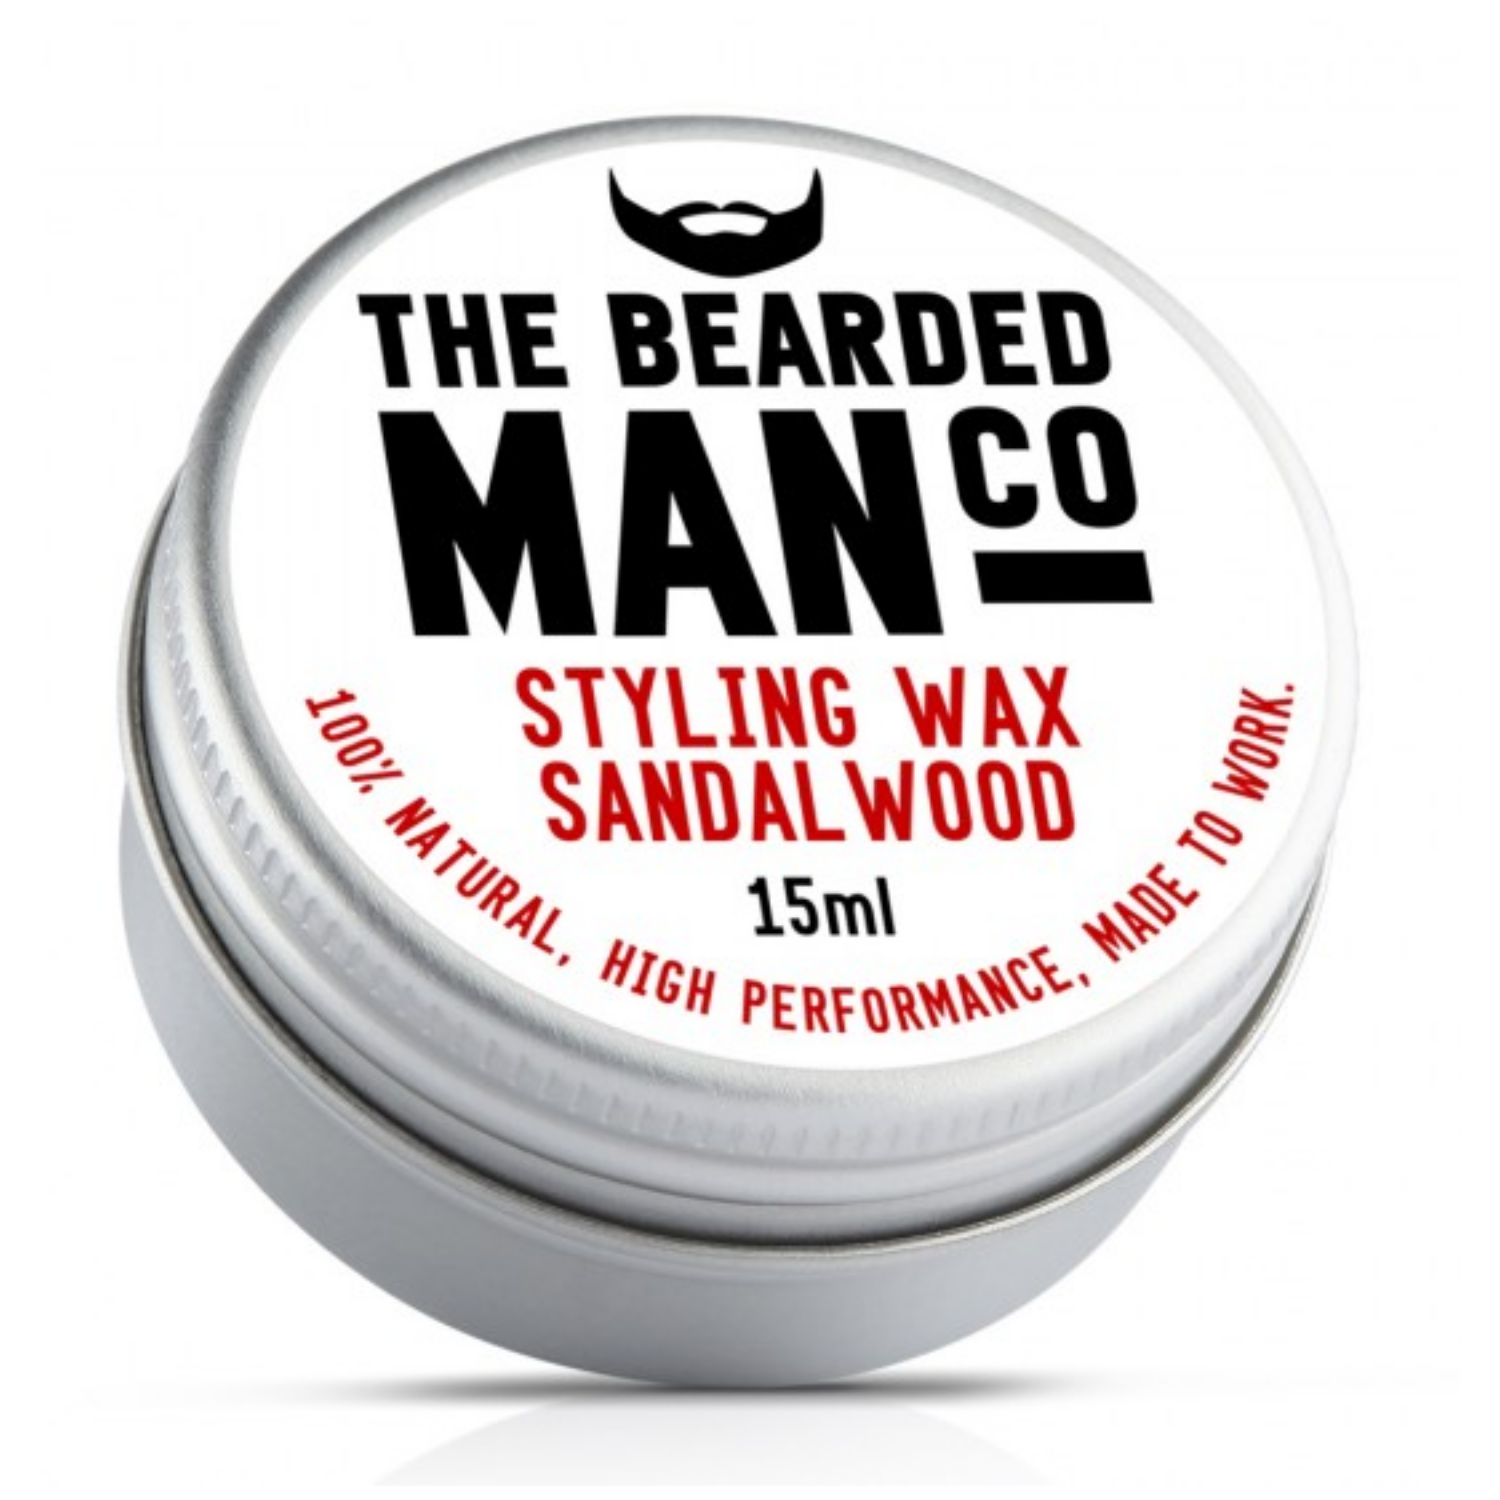 The Bearded Man Co. szakáll és bajuszwax - Sandalwood